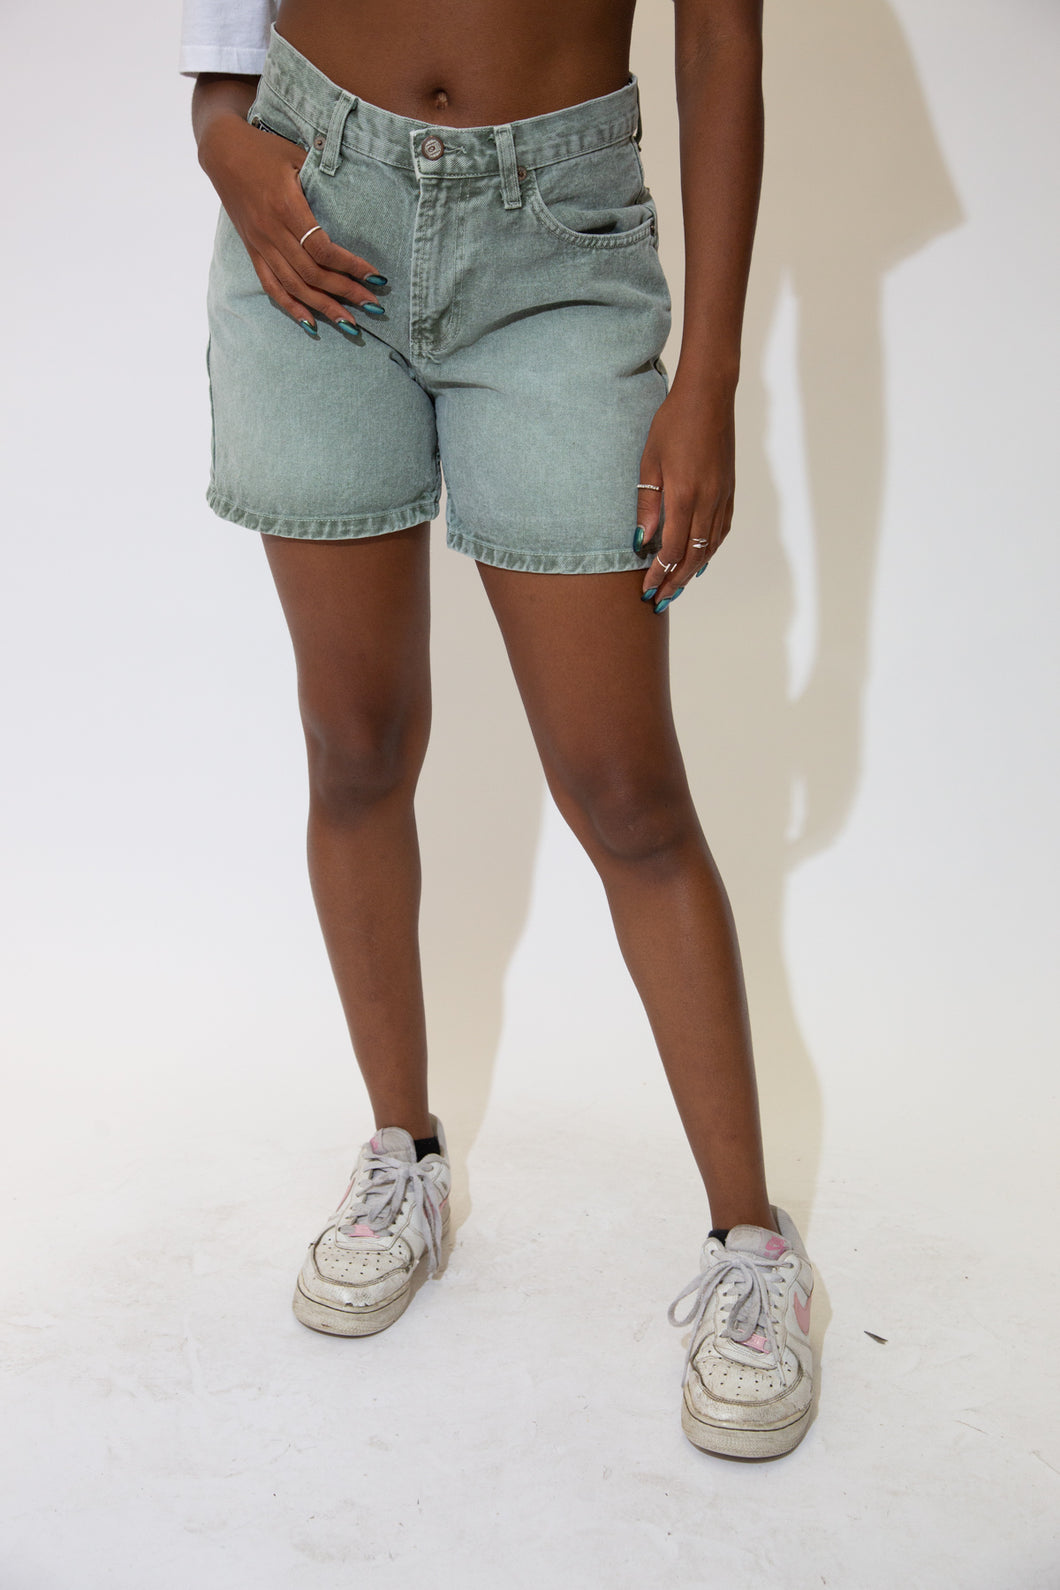 Light-wash green, these denim shorts have white stitching, pentagon shaped back pockets and branding on the button, front pocket and back waistline.